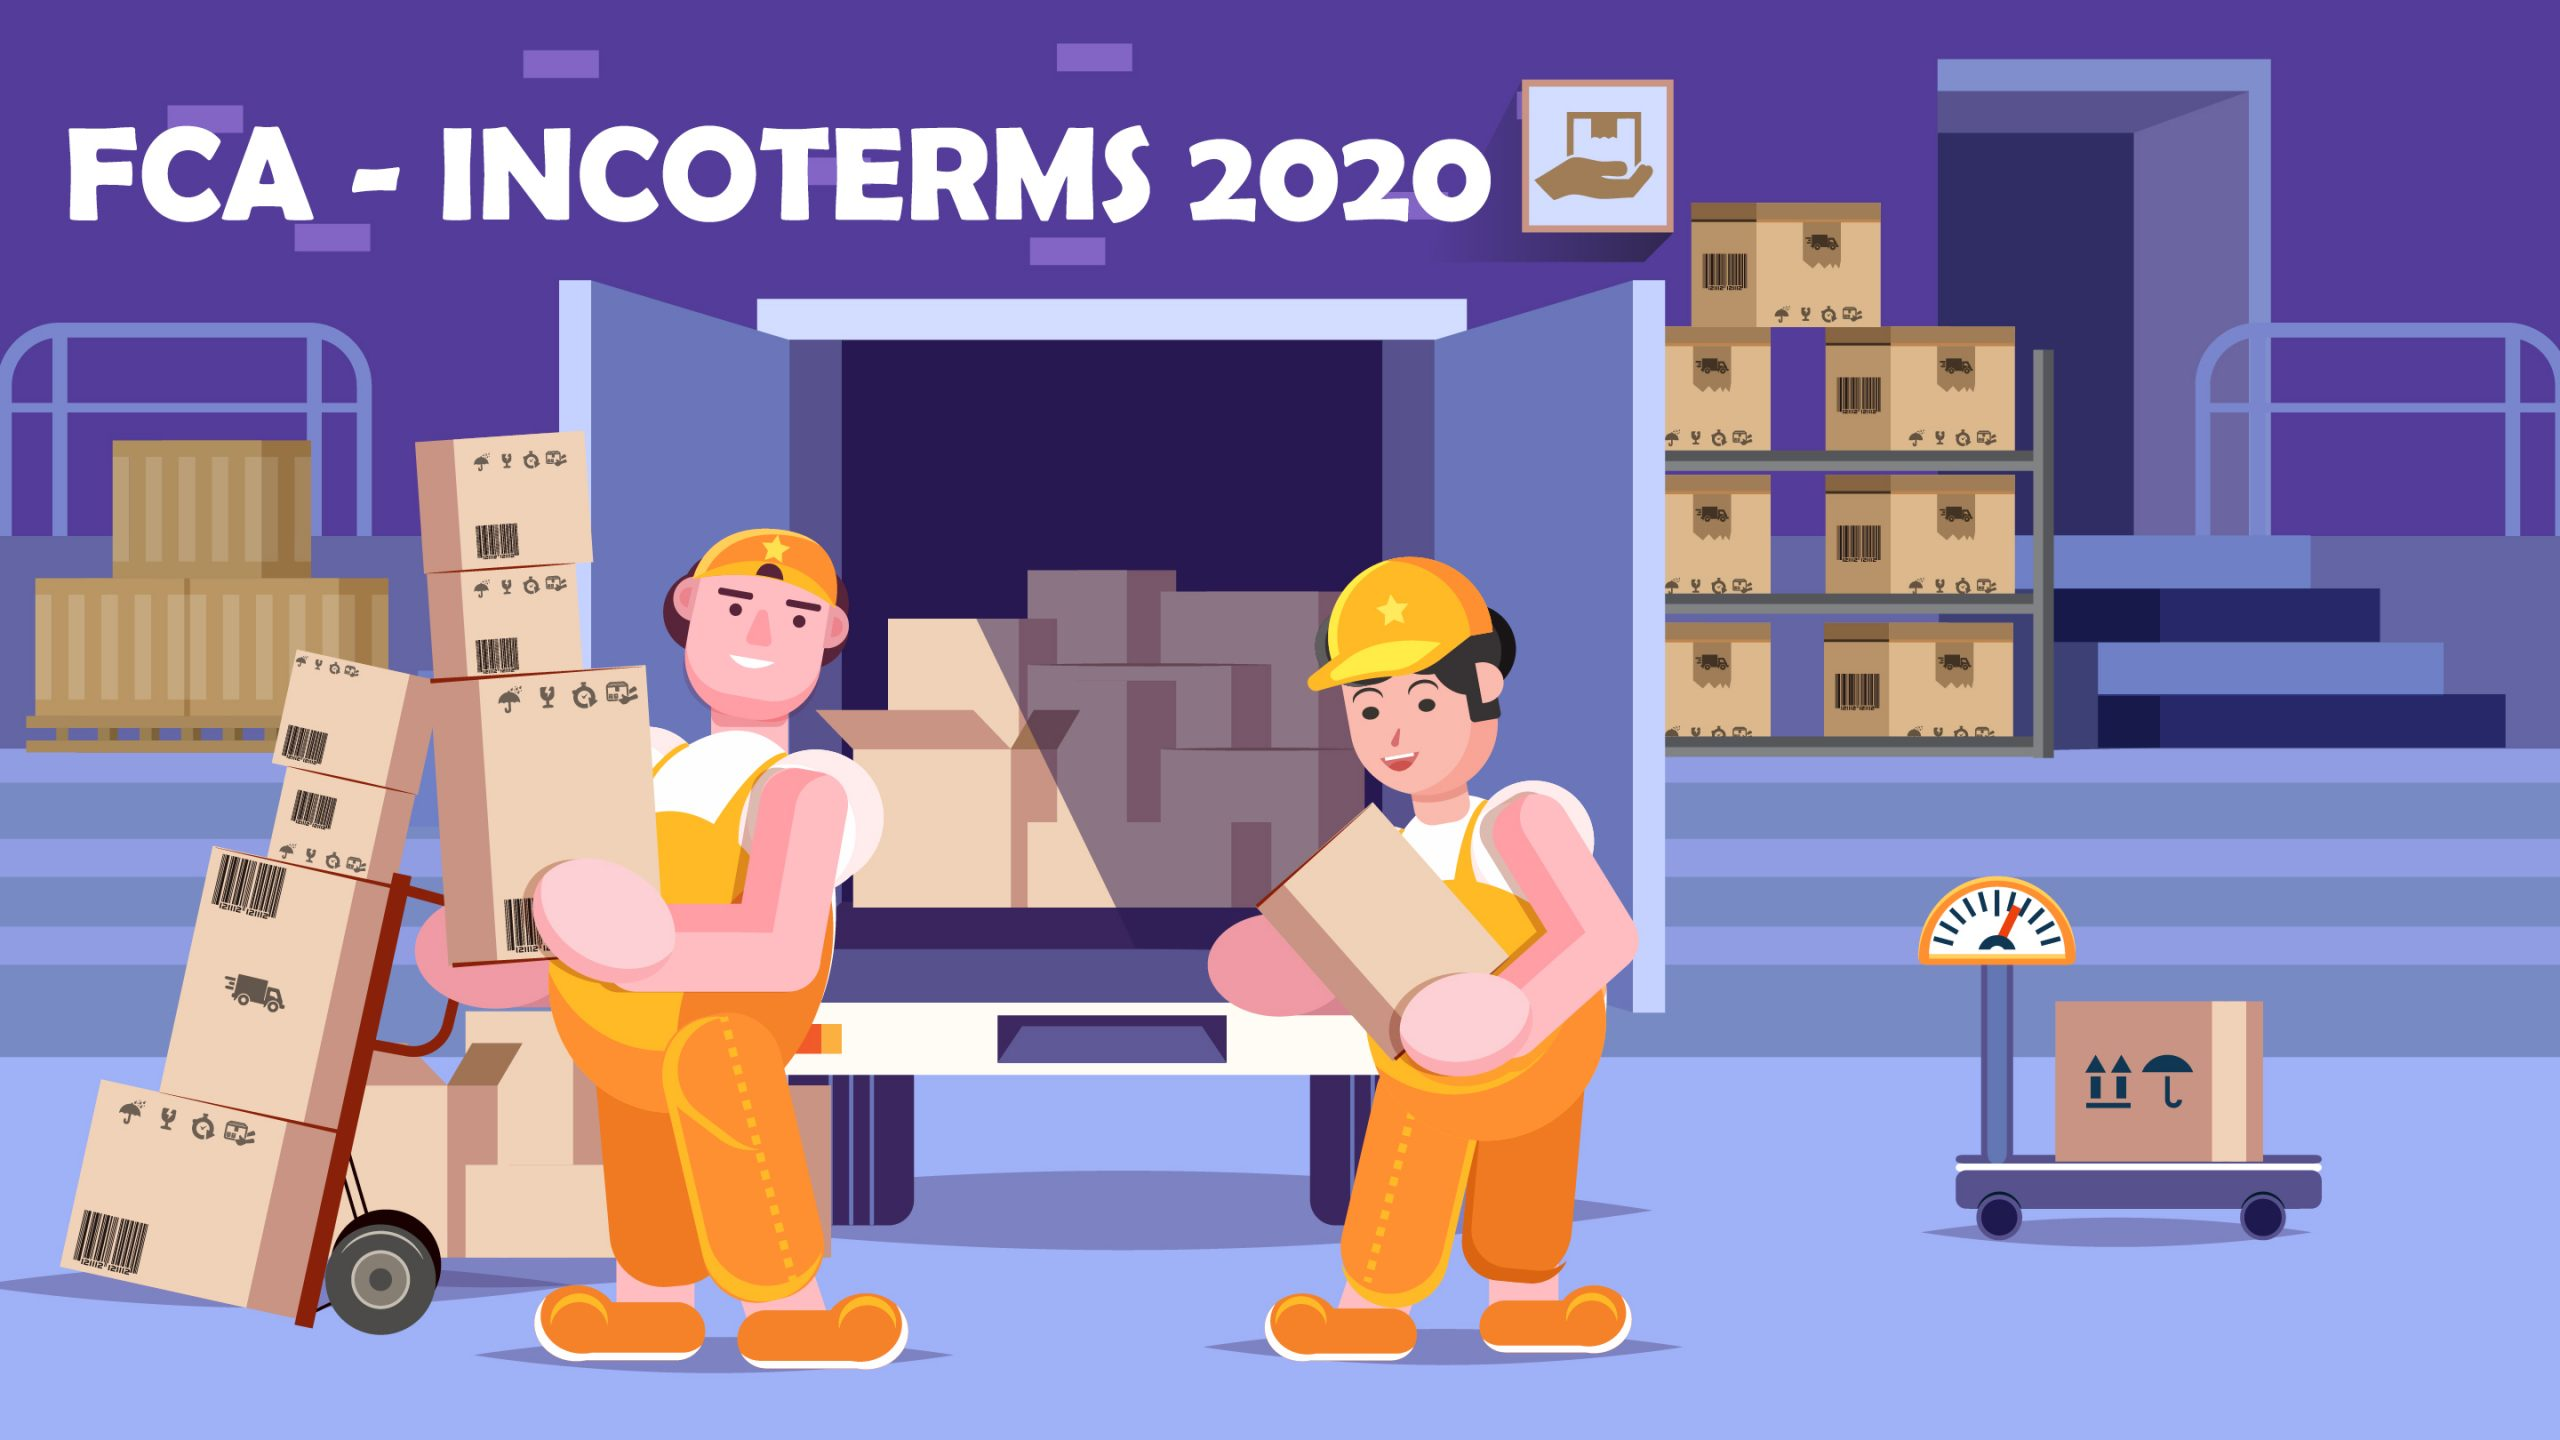 What is FCA incoterms 2020